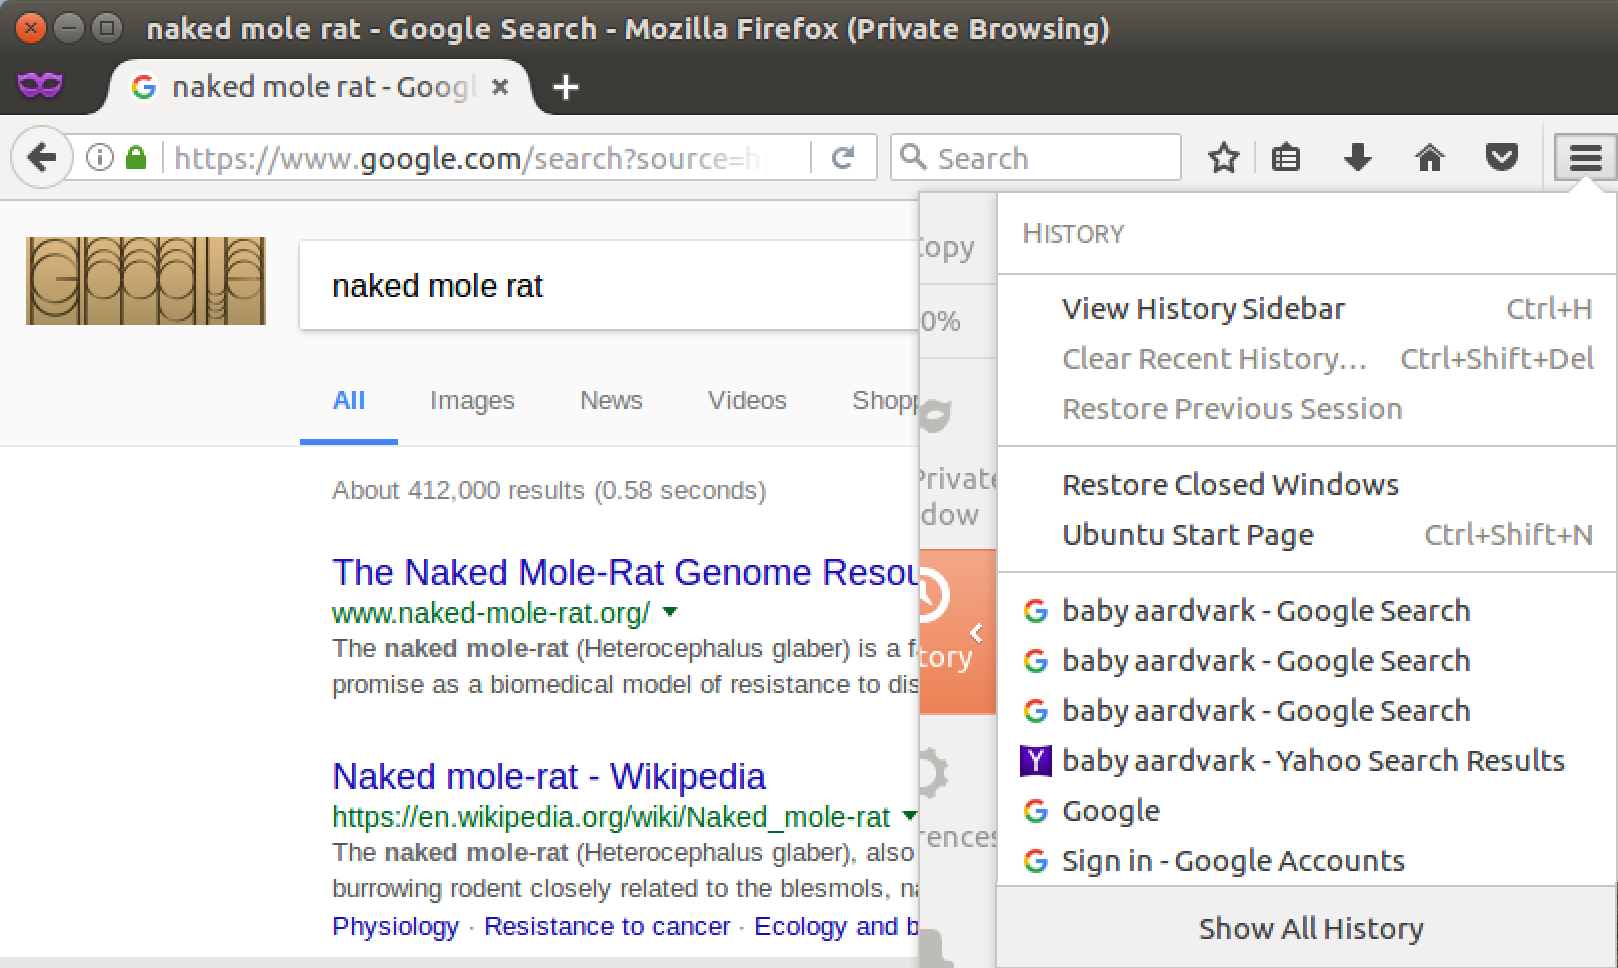 private browsing hides google searches, firefox